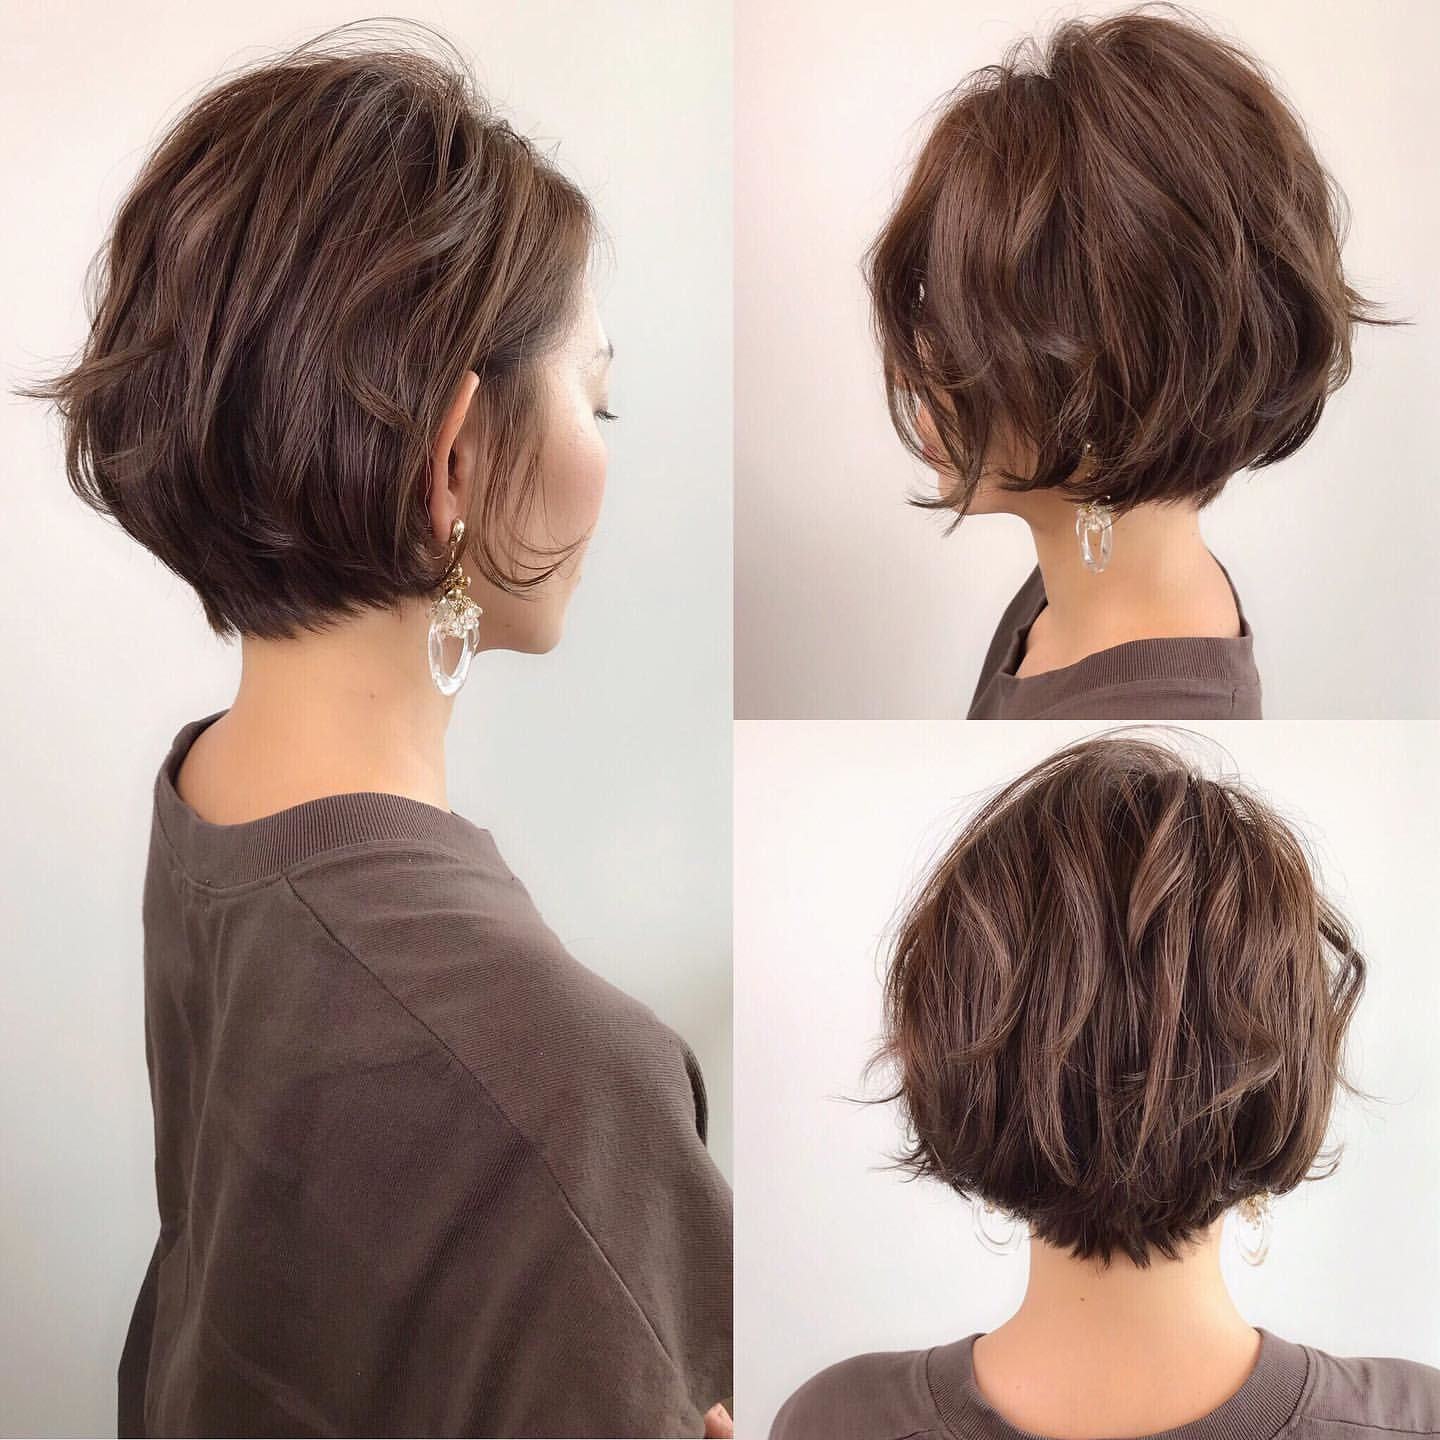 11 Best Messy Short Hairstyles Japanese - Short bob hairstyles for